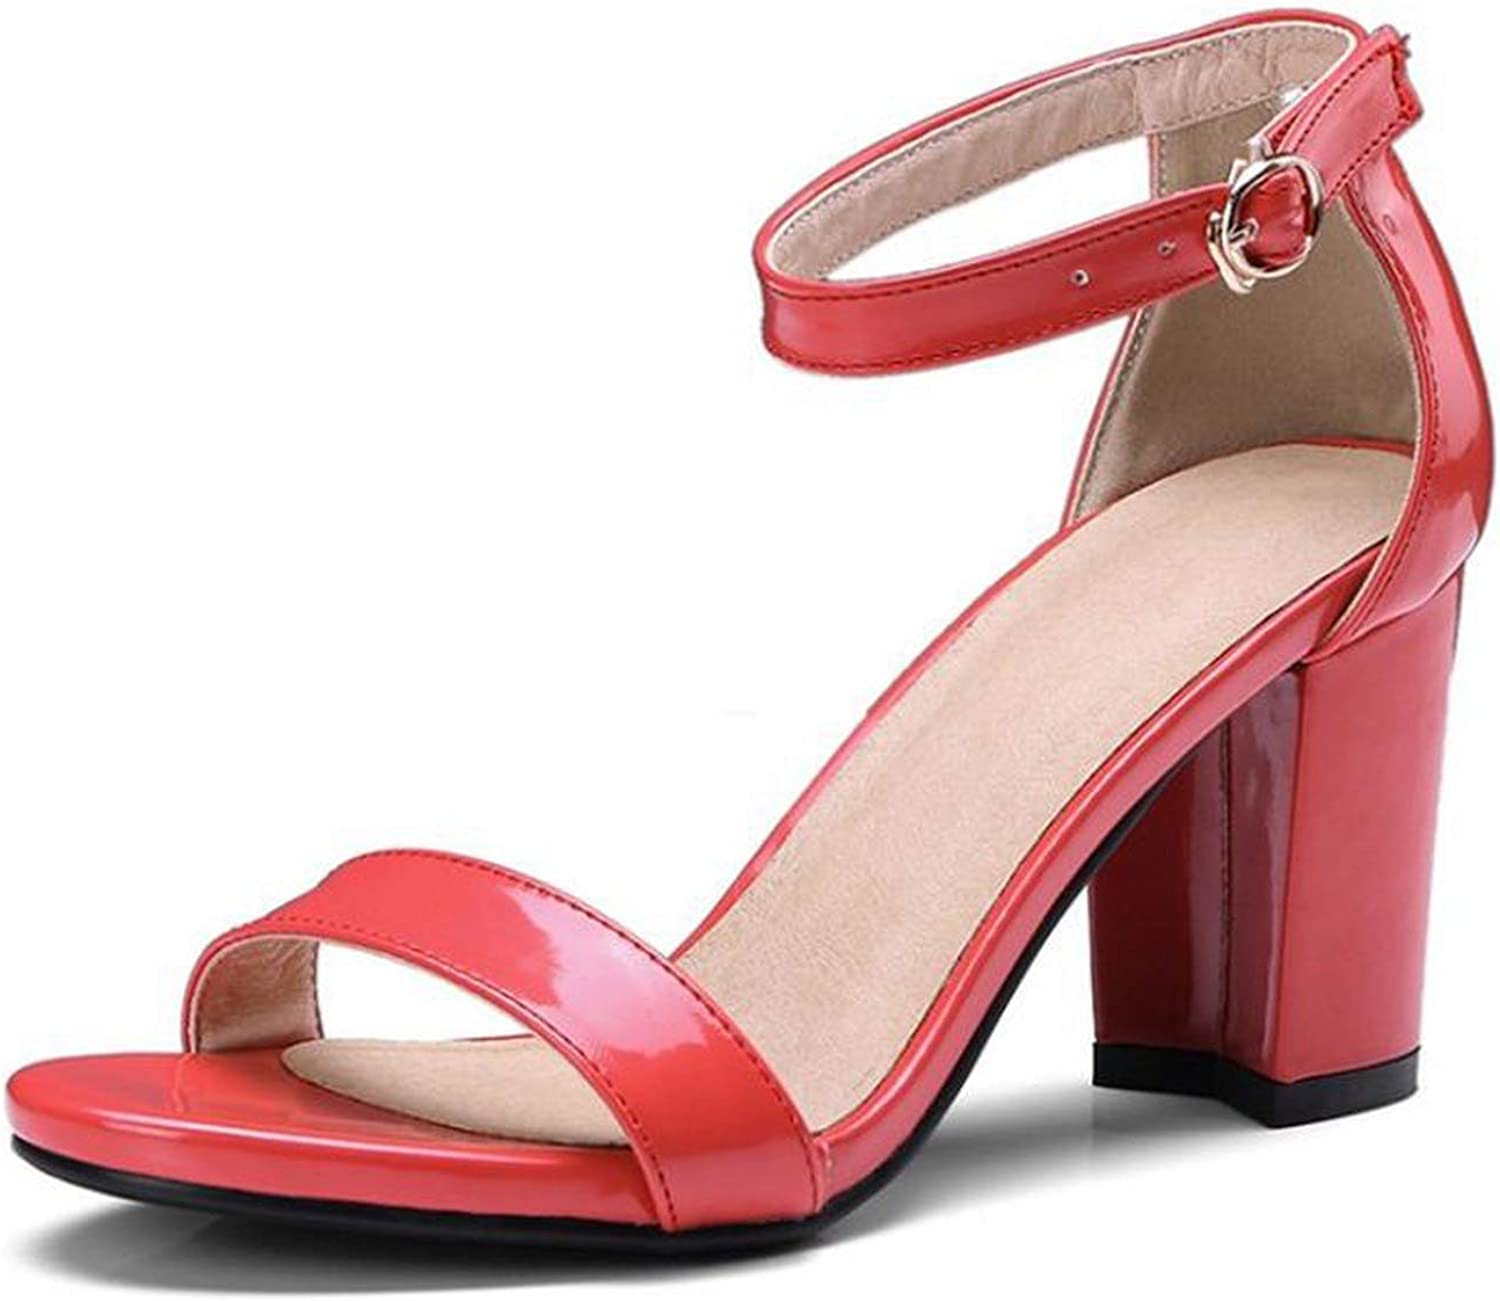 Women High Heel Sandals Ankle Strap Thick Heels Sandals Women Dress Office Lady shoes